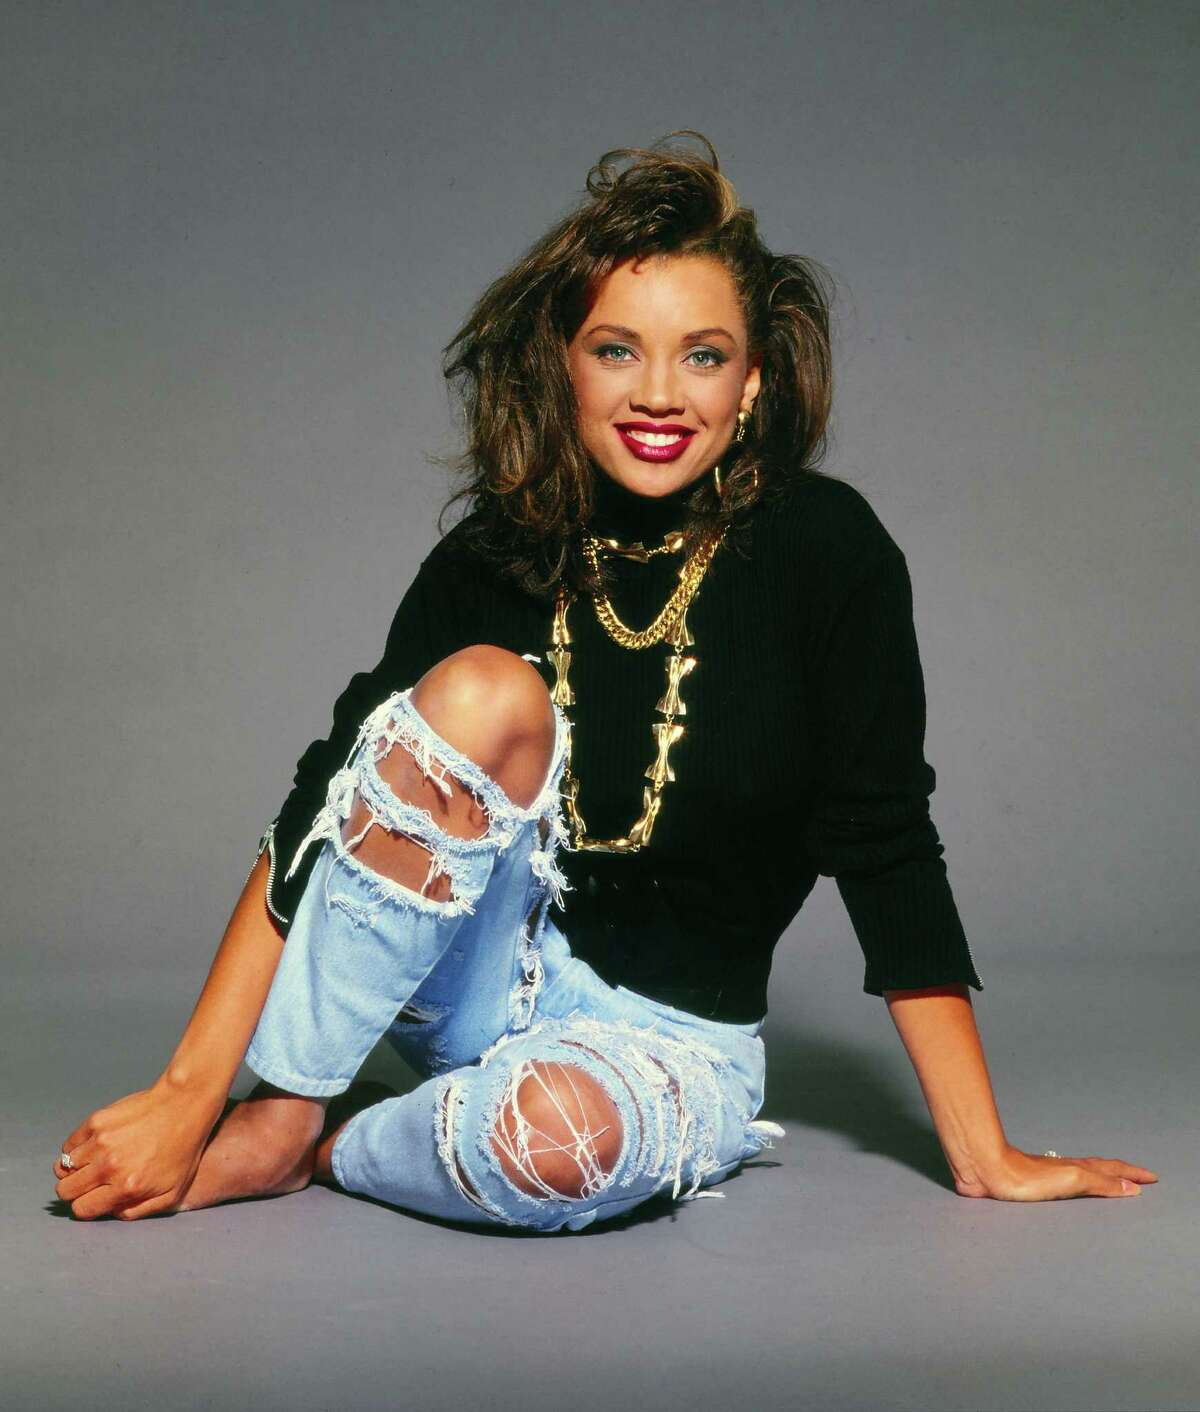 """FEMALE R&B SINGERS OF THE '90s You might have forgotten some of these ladies. Several of them are still working today. Vanessa Williams Hit you know: """"Save the Best for Last,"""" 1992 Currently: Still making music, starring on TV, recently returned to Miss America as a judge"""